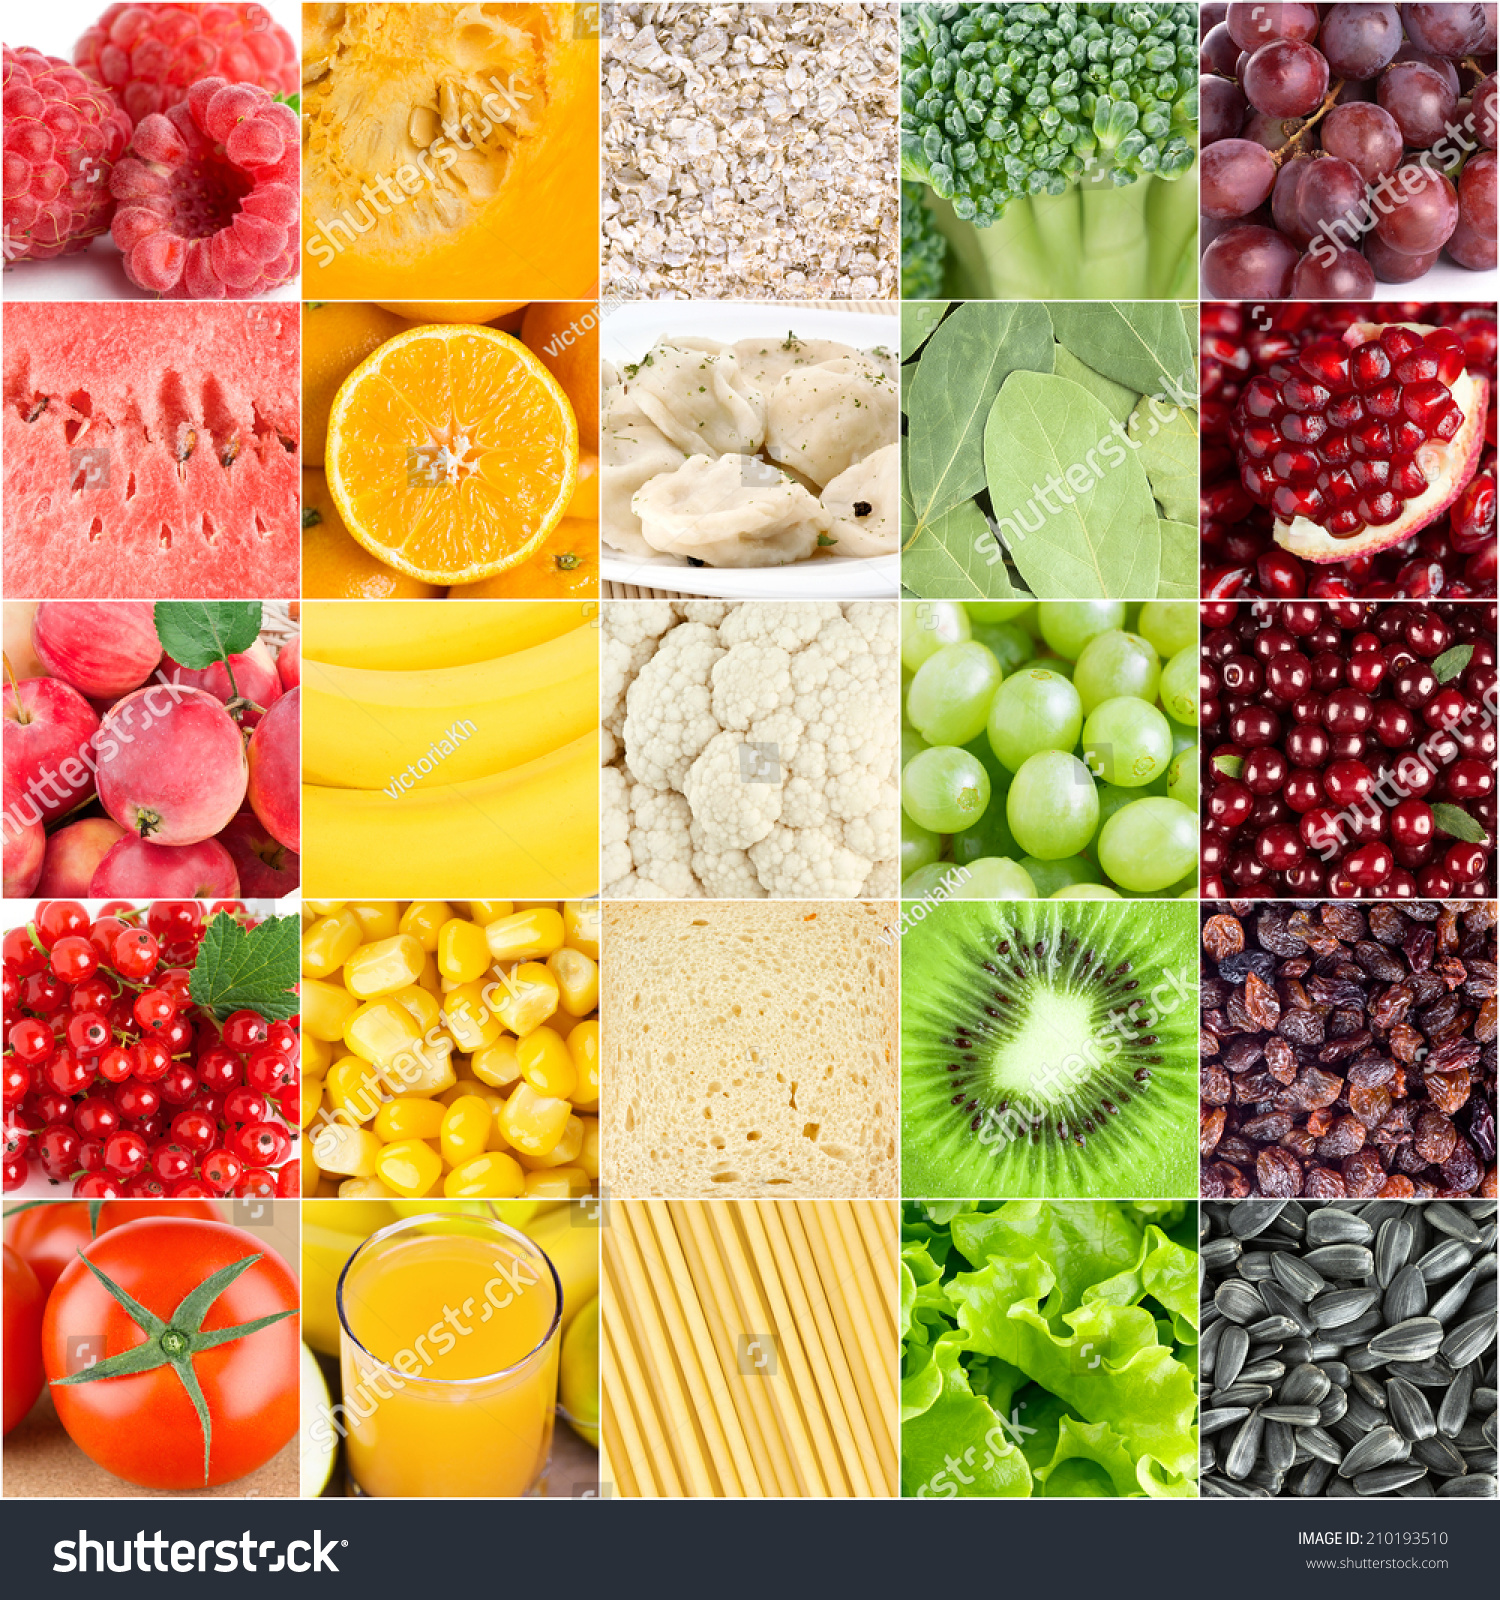 Image result for different color foods